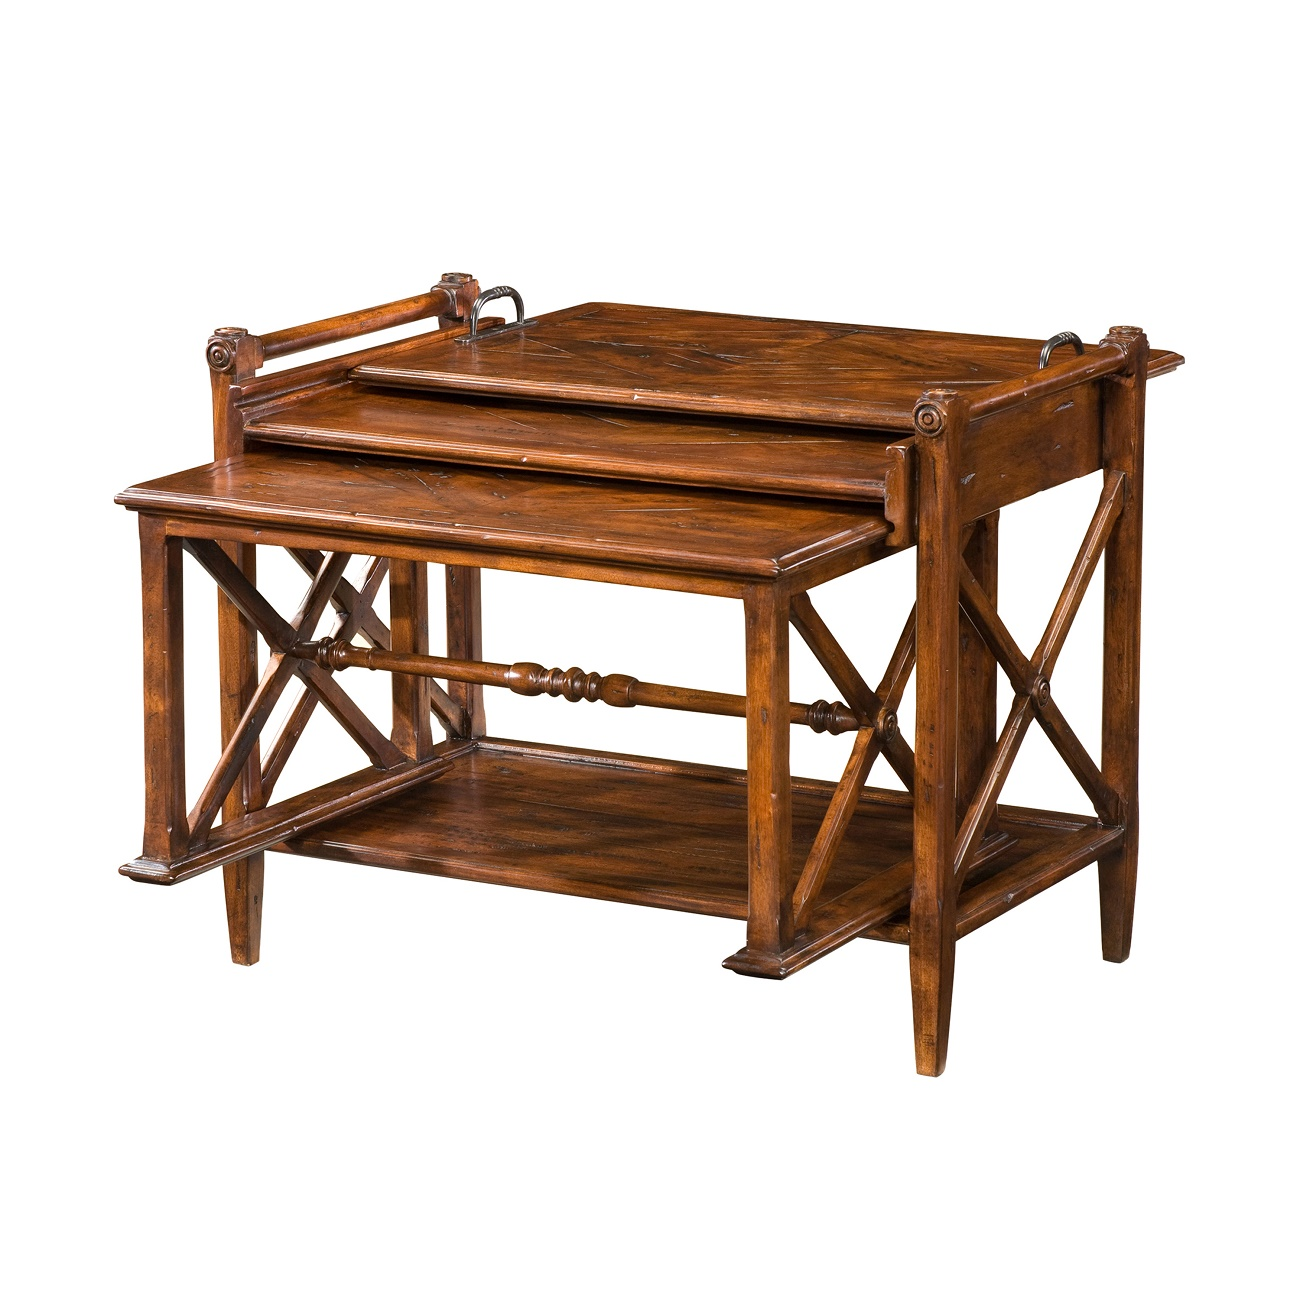 A Rustic deal Nesting Table, Theodore Alexander Table, Brooklyn, New York